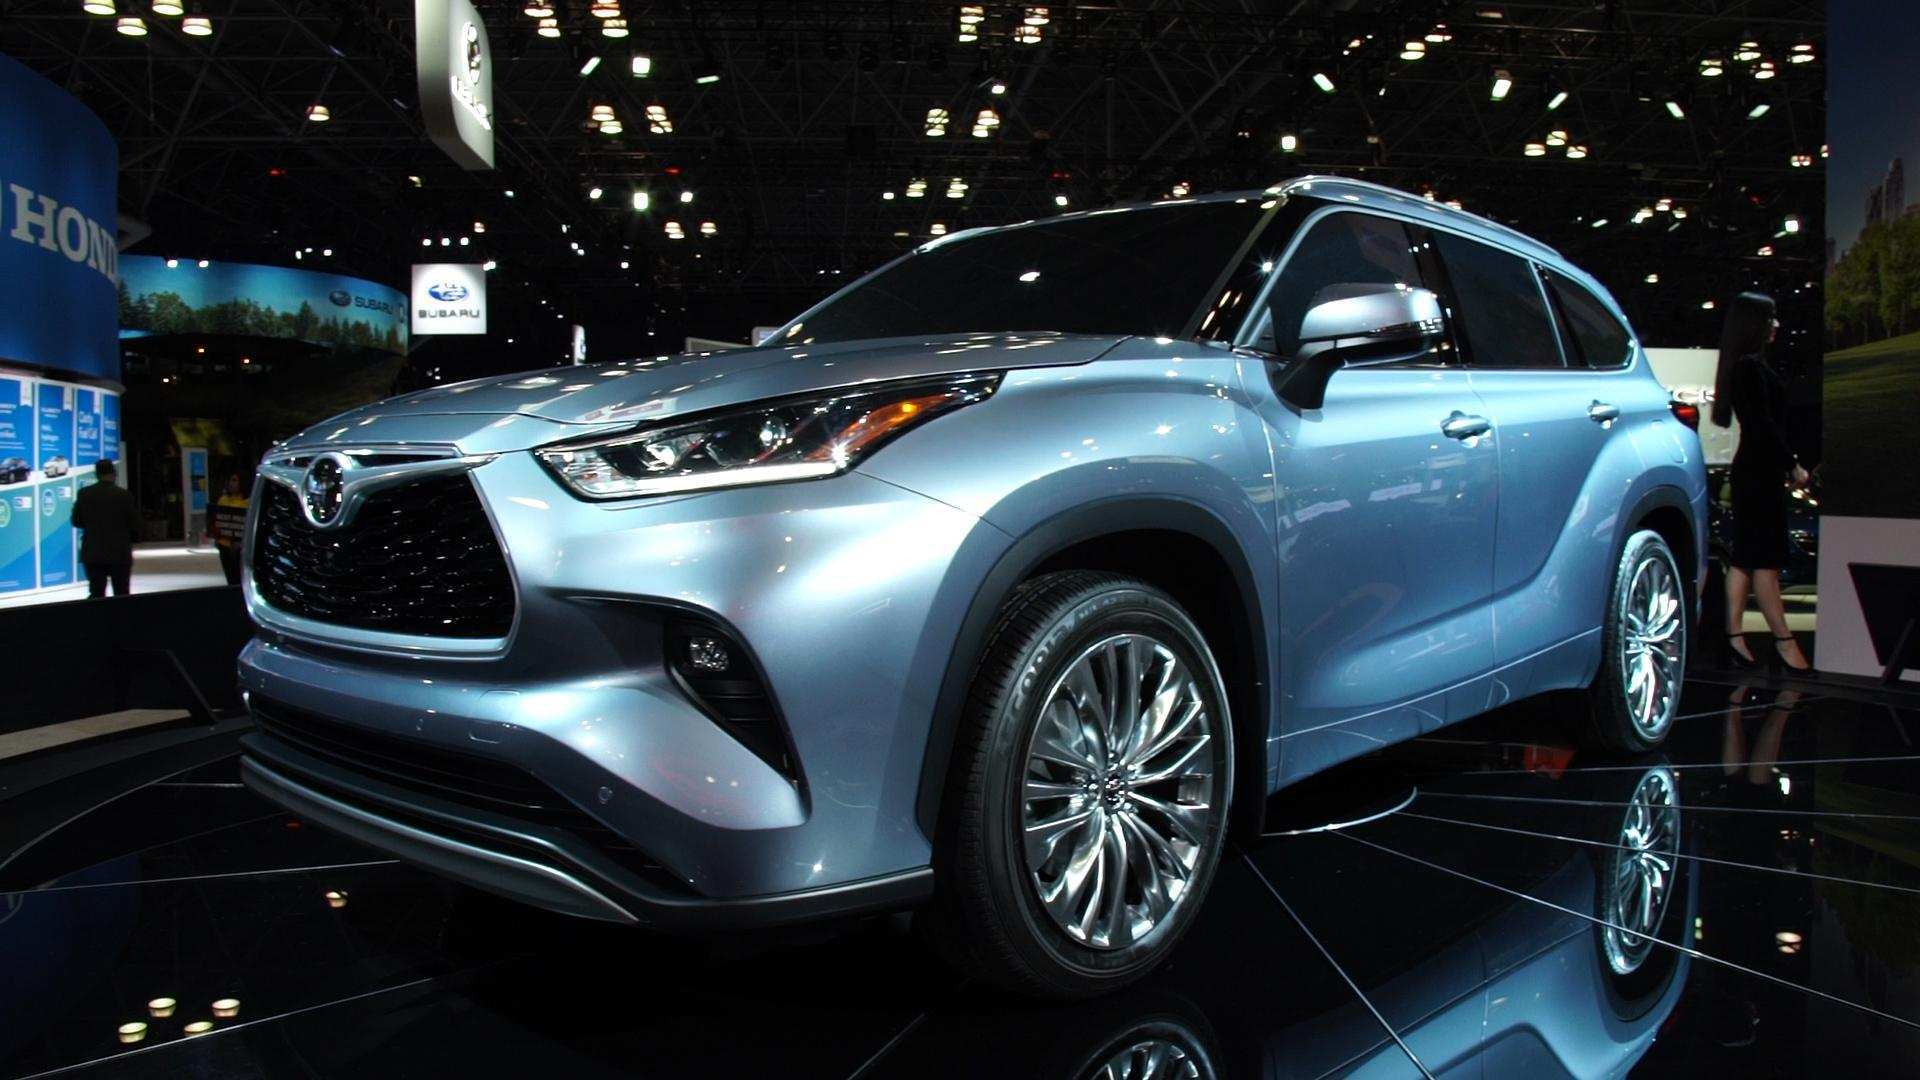 74 The Best Toyota Highlander 2020 Interior Release